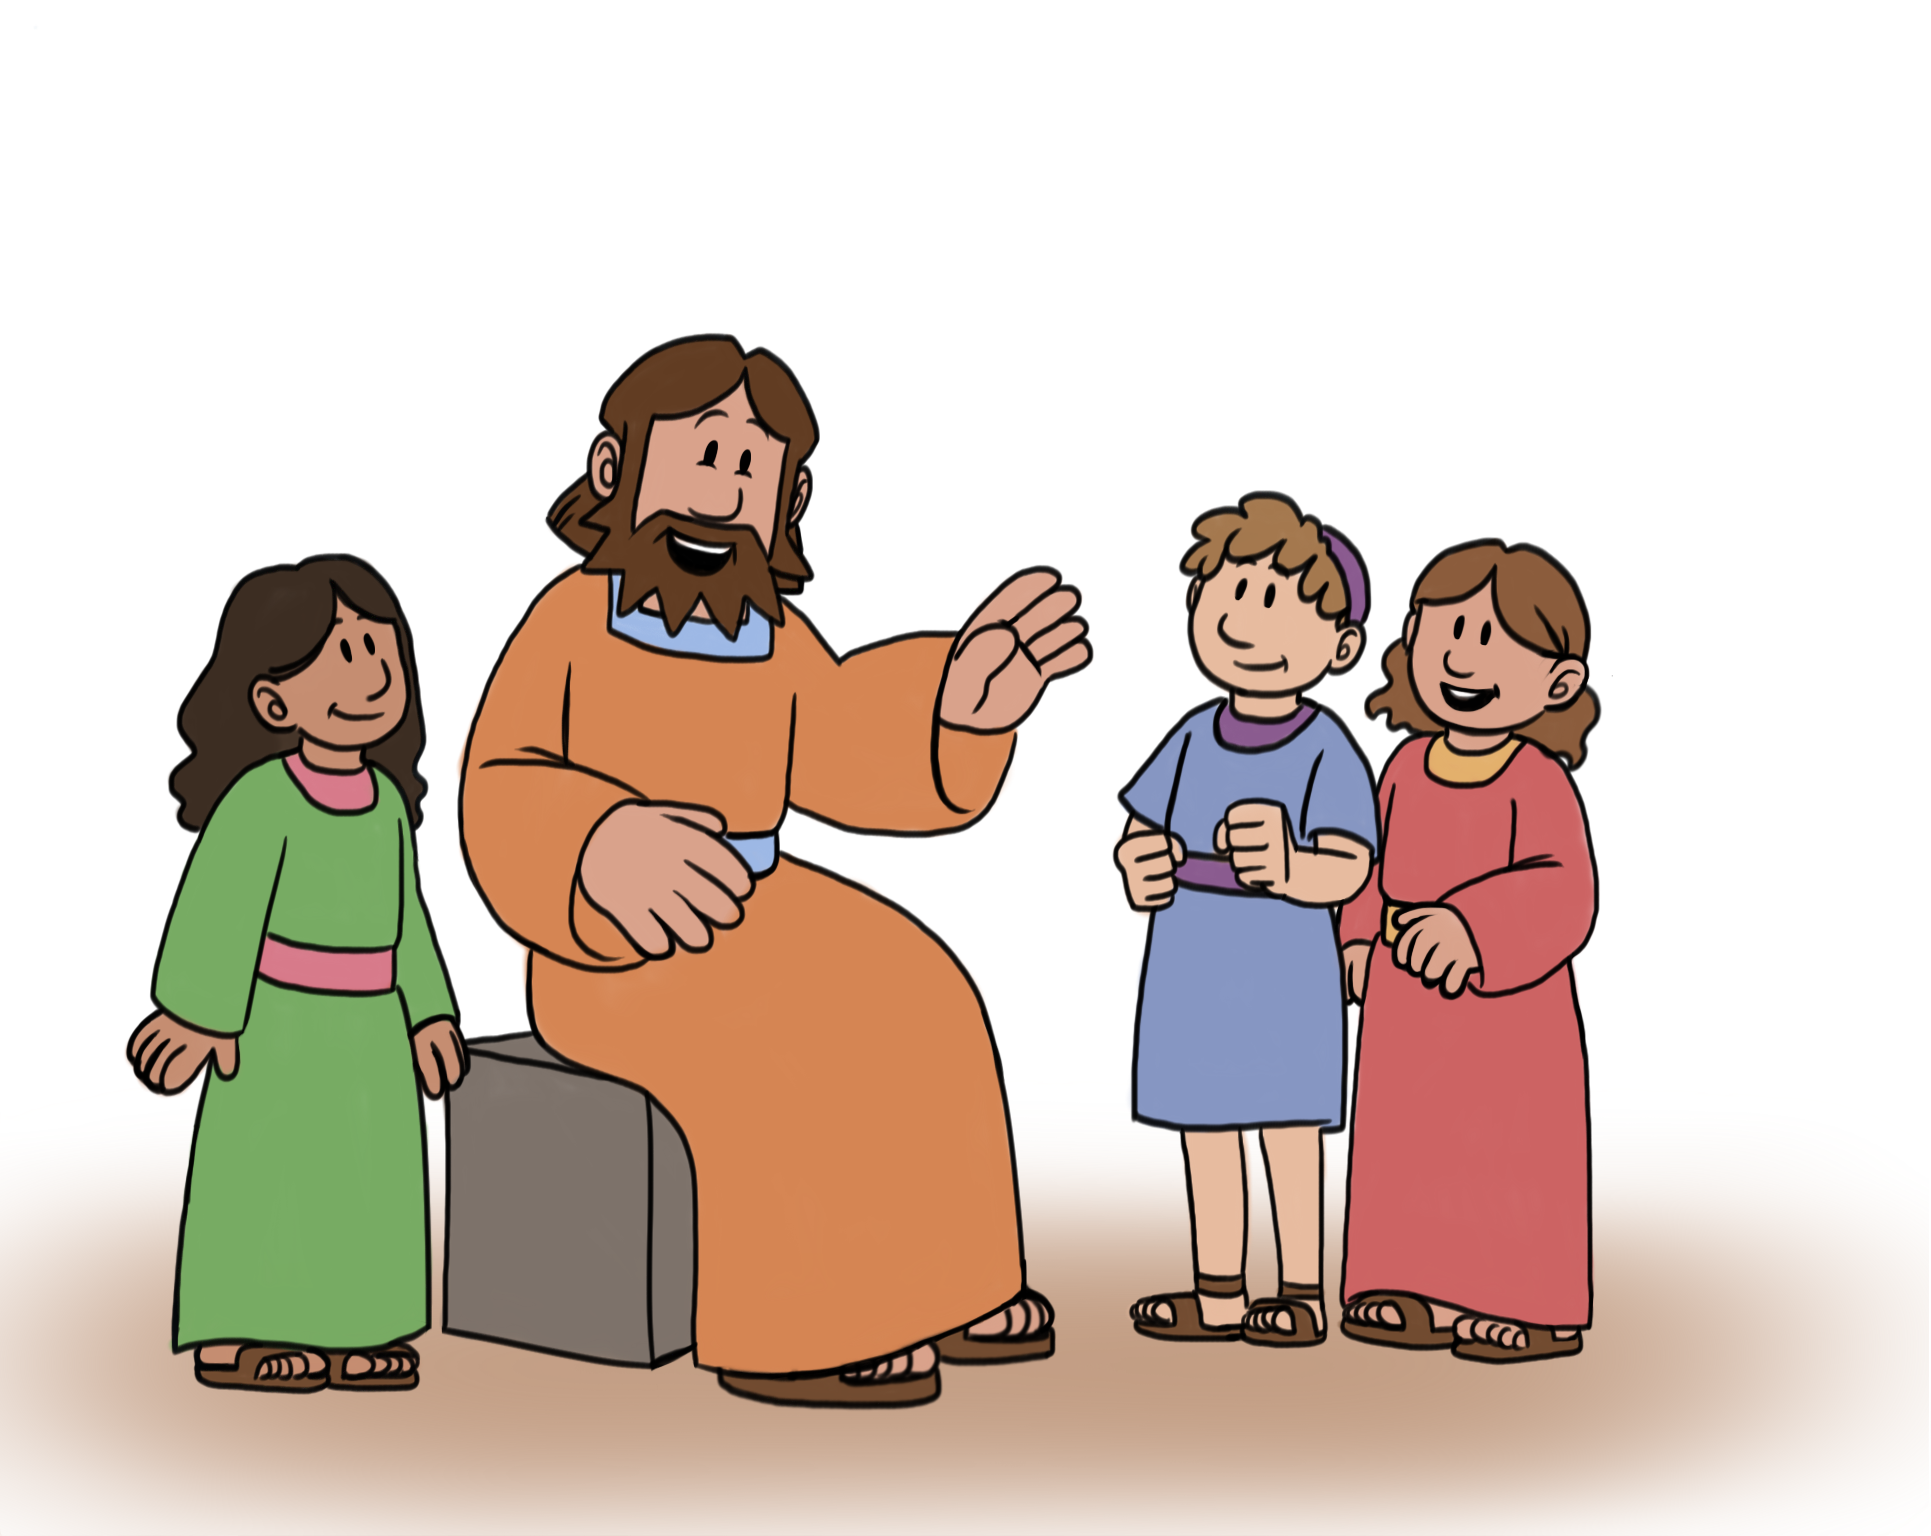 Jesus clipart Jesus And Children Clipart And art Clipart jesus collection